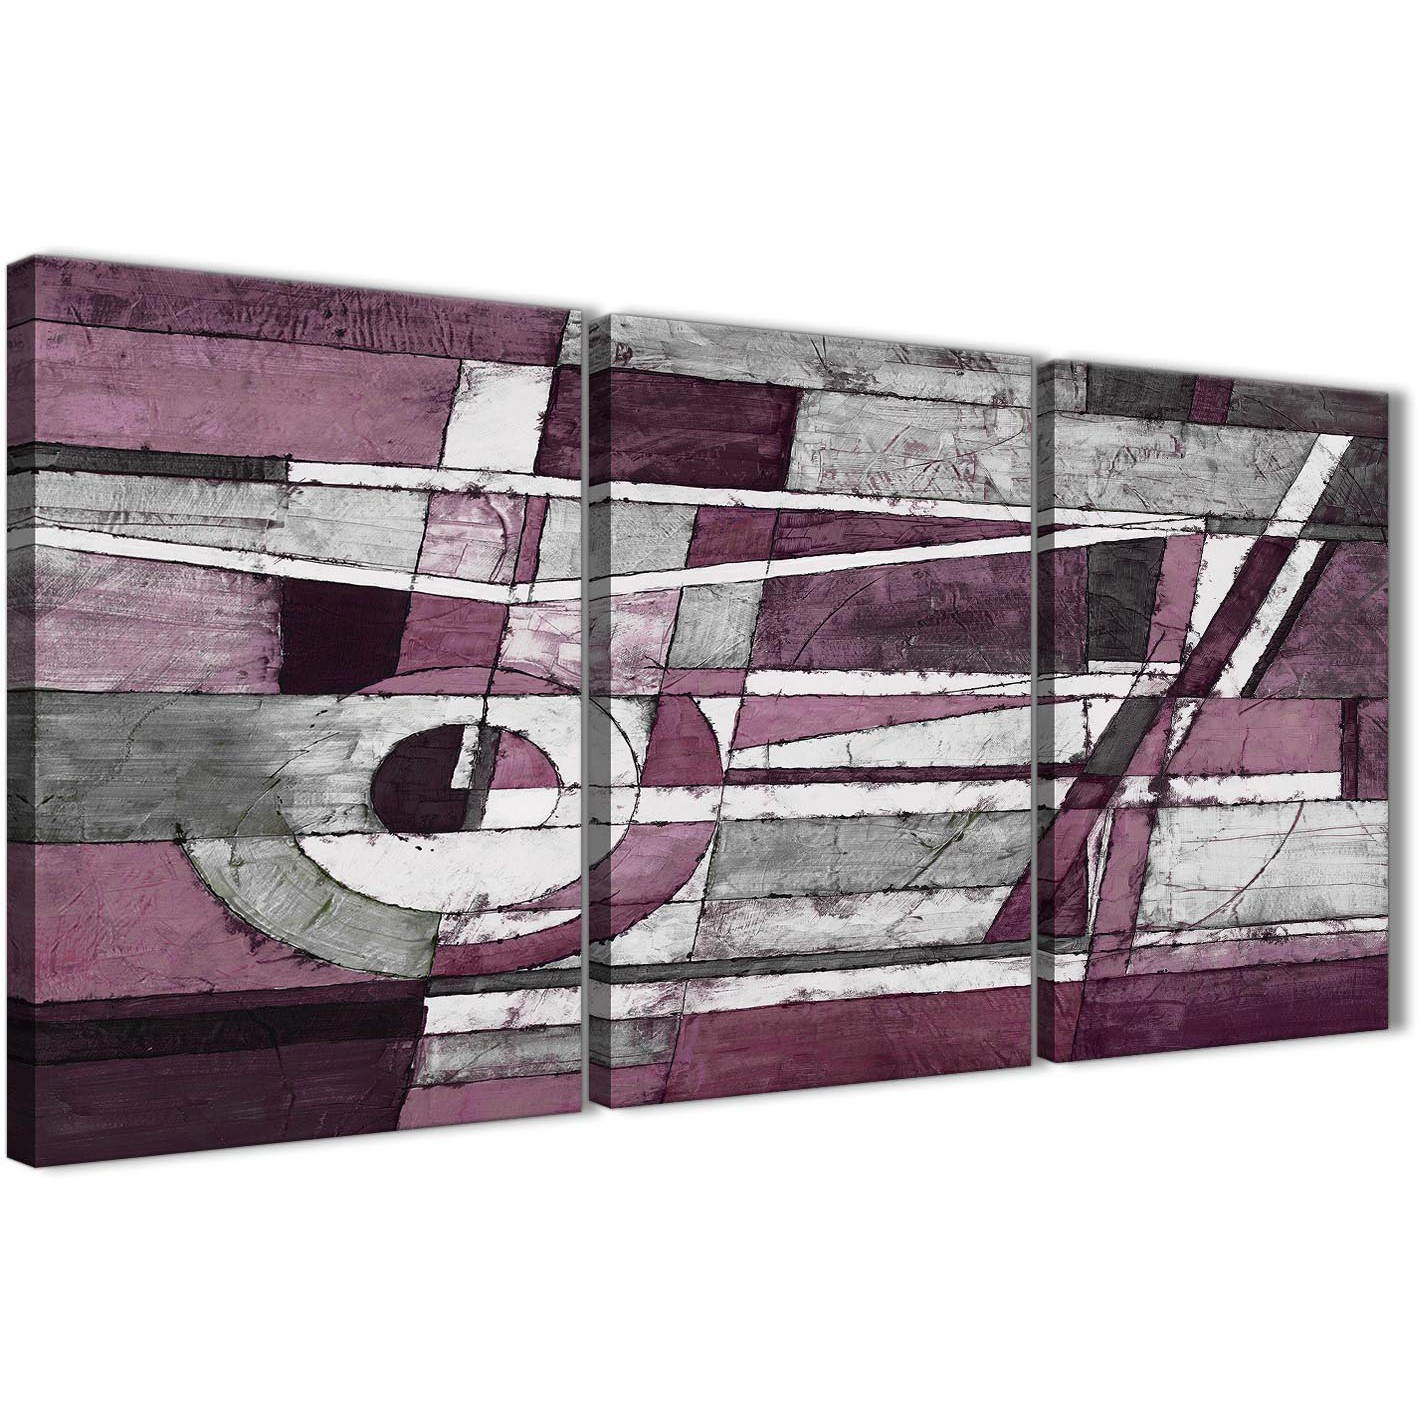 Bedroom Canvas Wall Art Uk: 3 Piece Plum Grey White Painting Living Room Canvas Wall